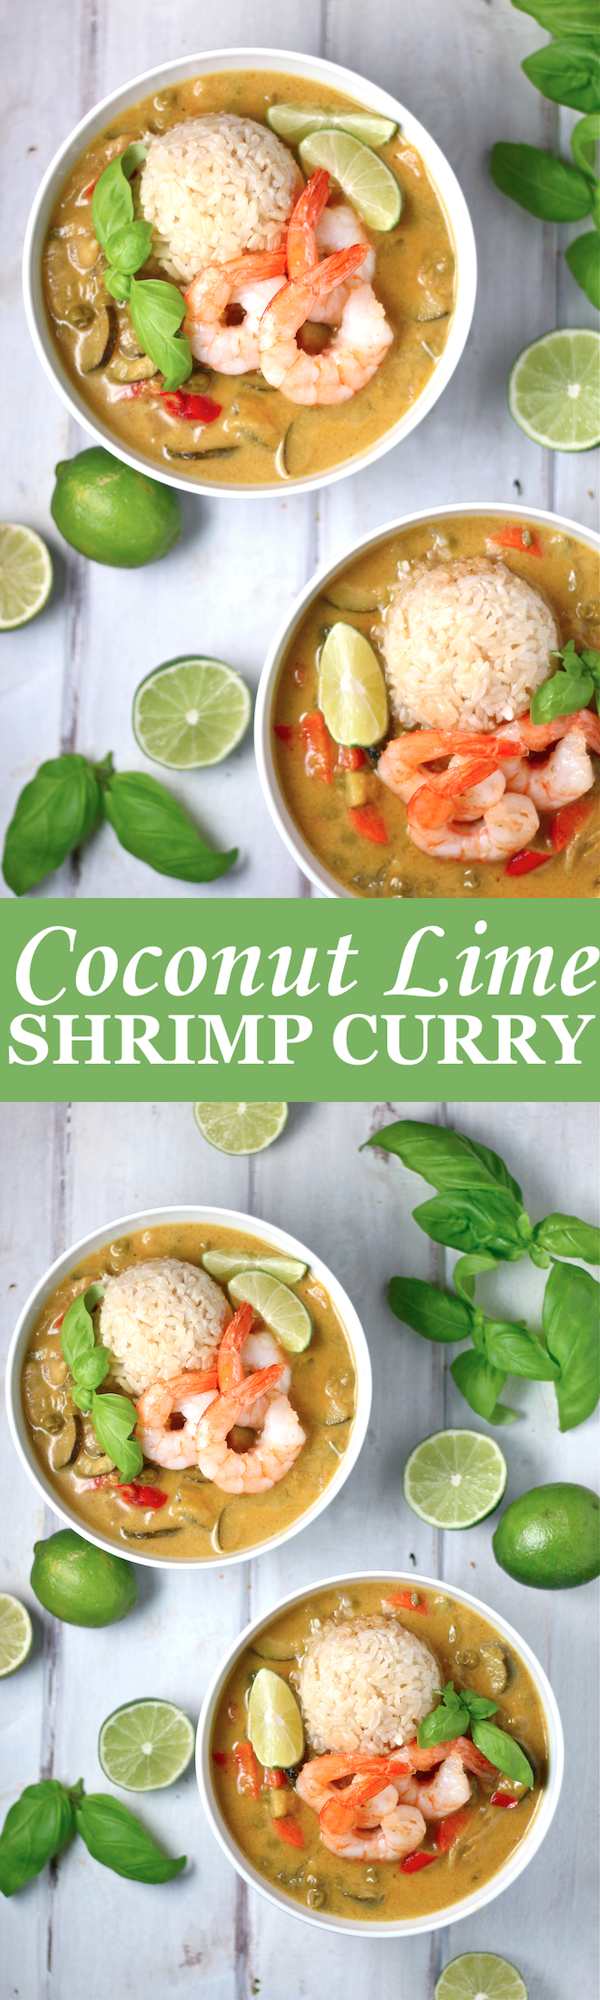 This Coconut Lime Shrimp Curry is light and flavorful, with a tart and creamy green curry sauce! | The Millennial Cook #thai #curry #greencurry #shrimp #coconut #lime